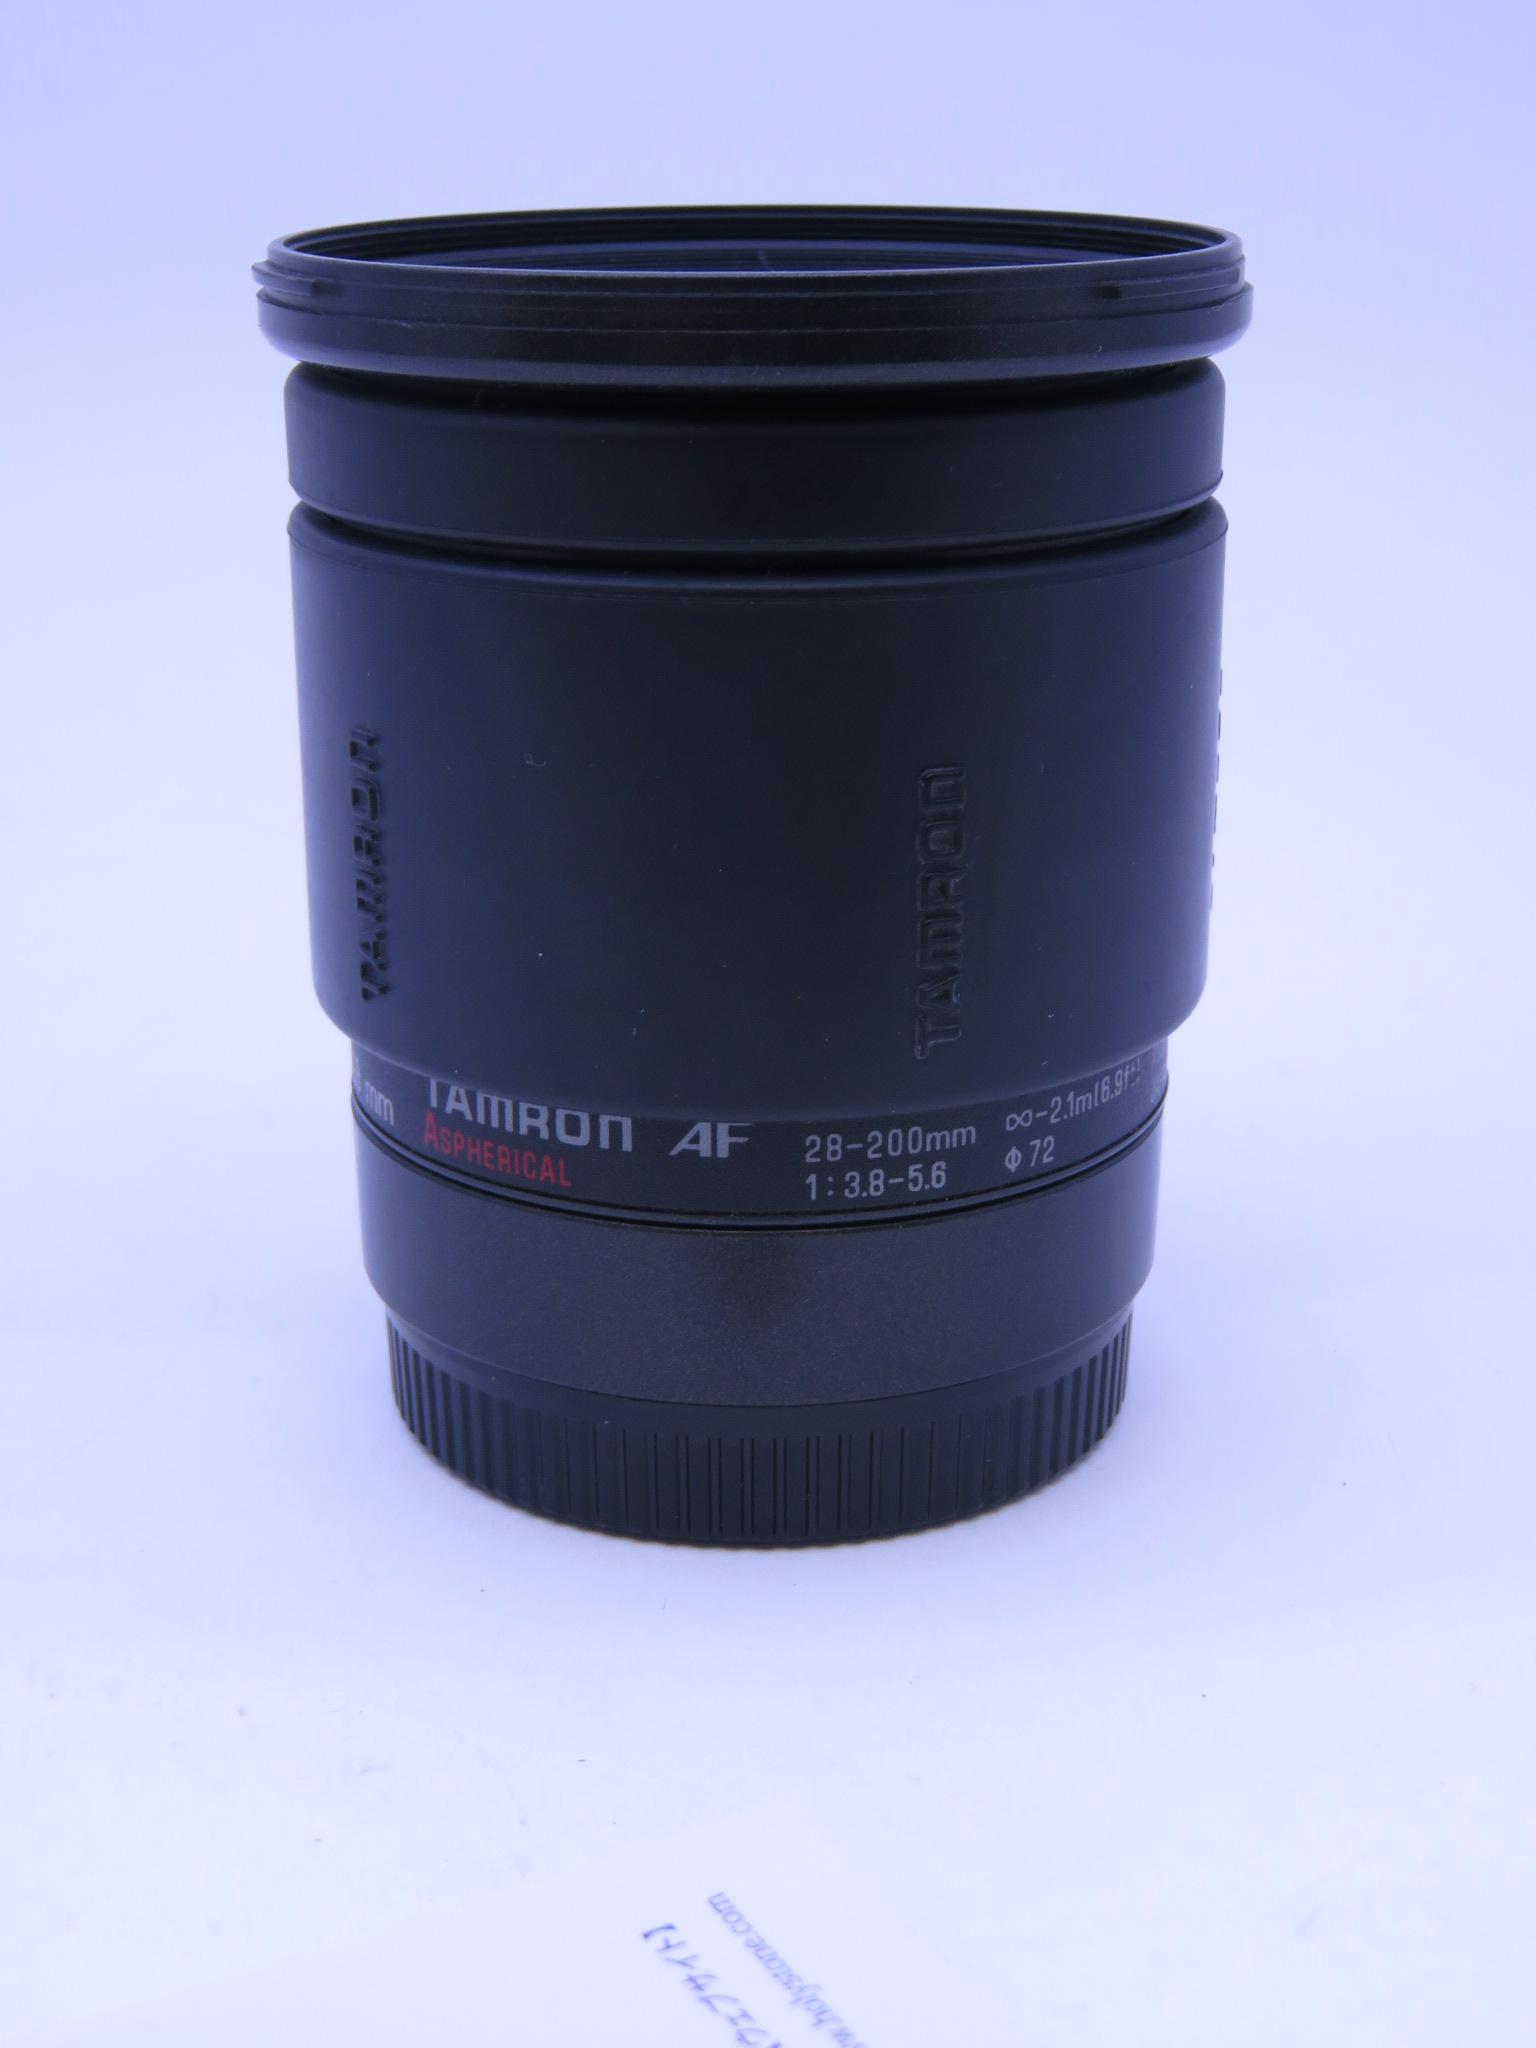 Tamron Zoom AF 28-200 mm f3.8/5.6 Aspherical for CANON タムロン ズームレンズ キャノン用